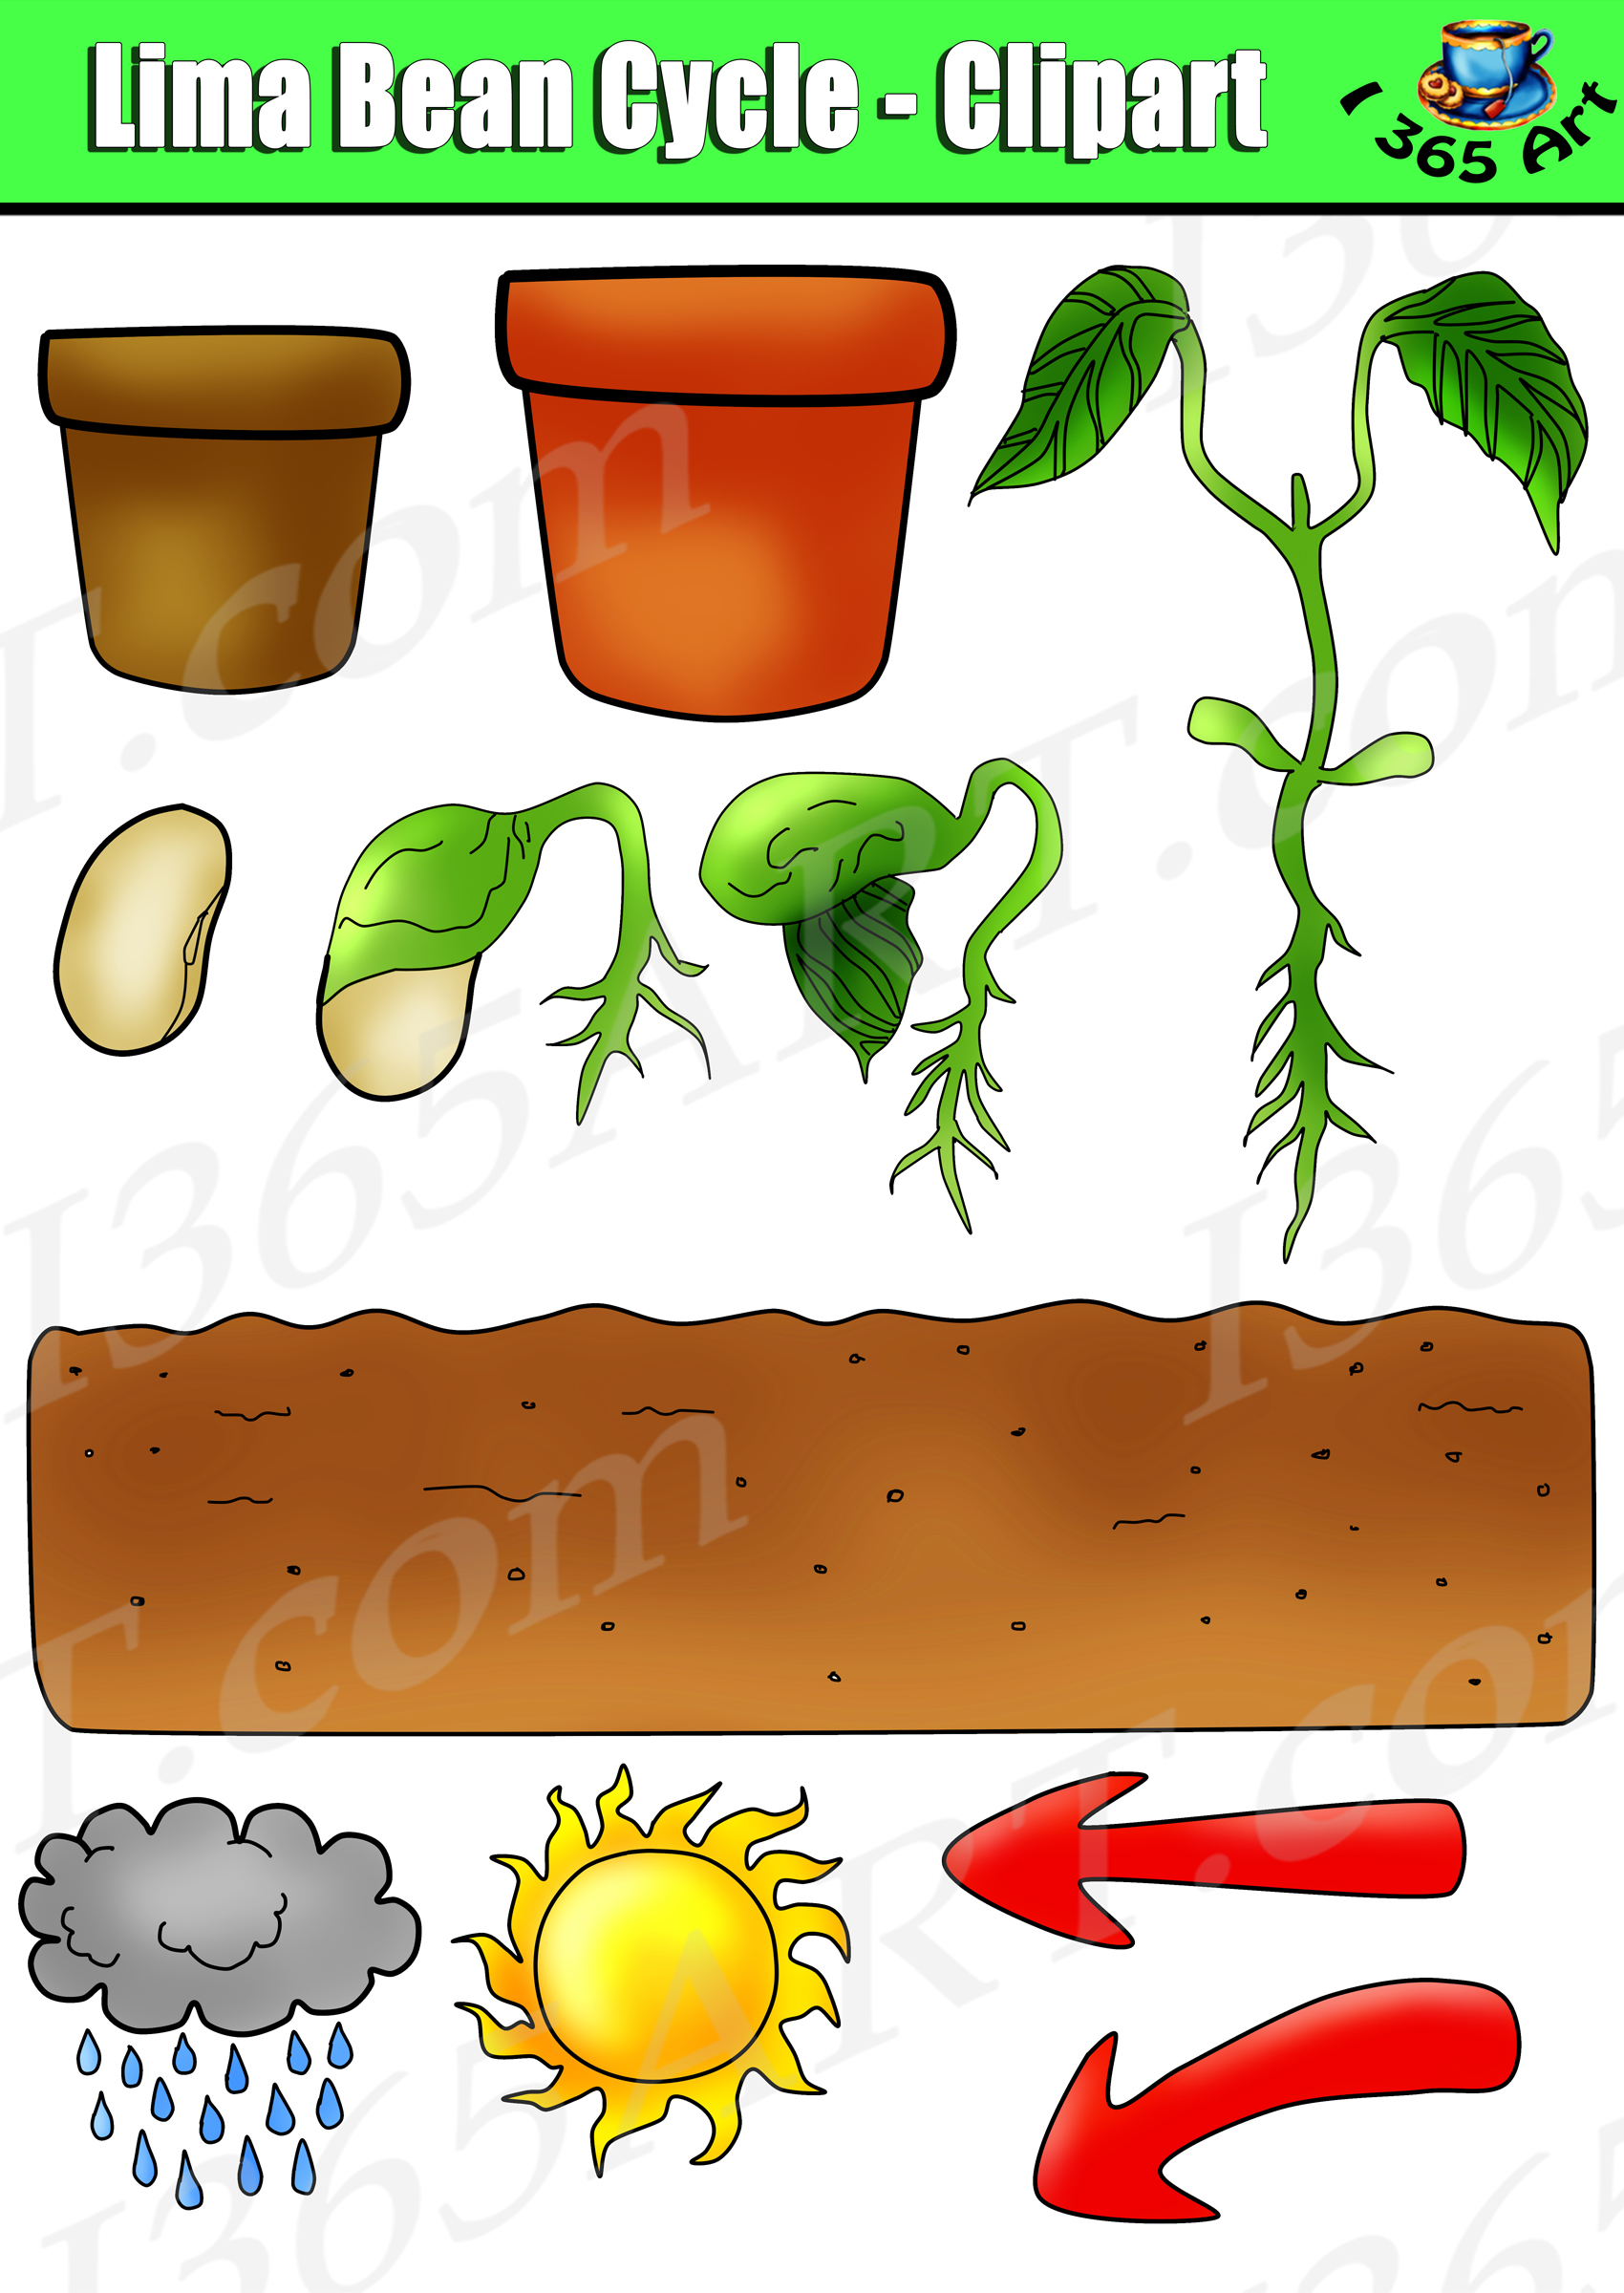 Beans clipart lima bean. Plant life cycle set